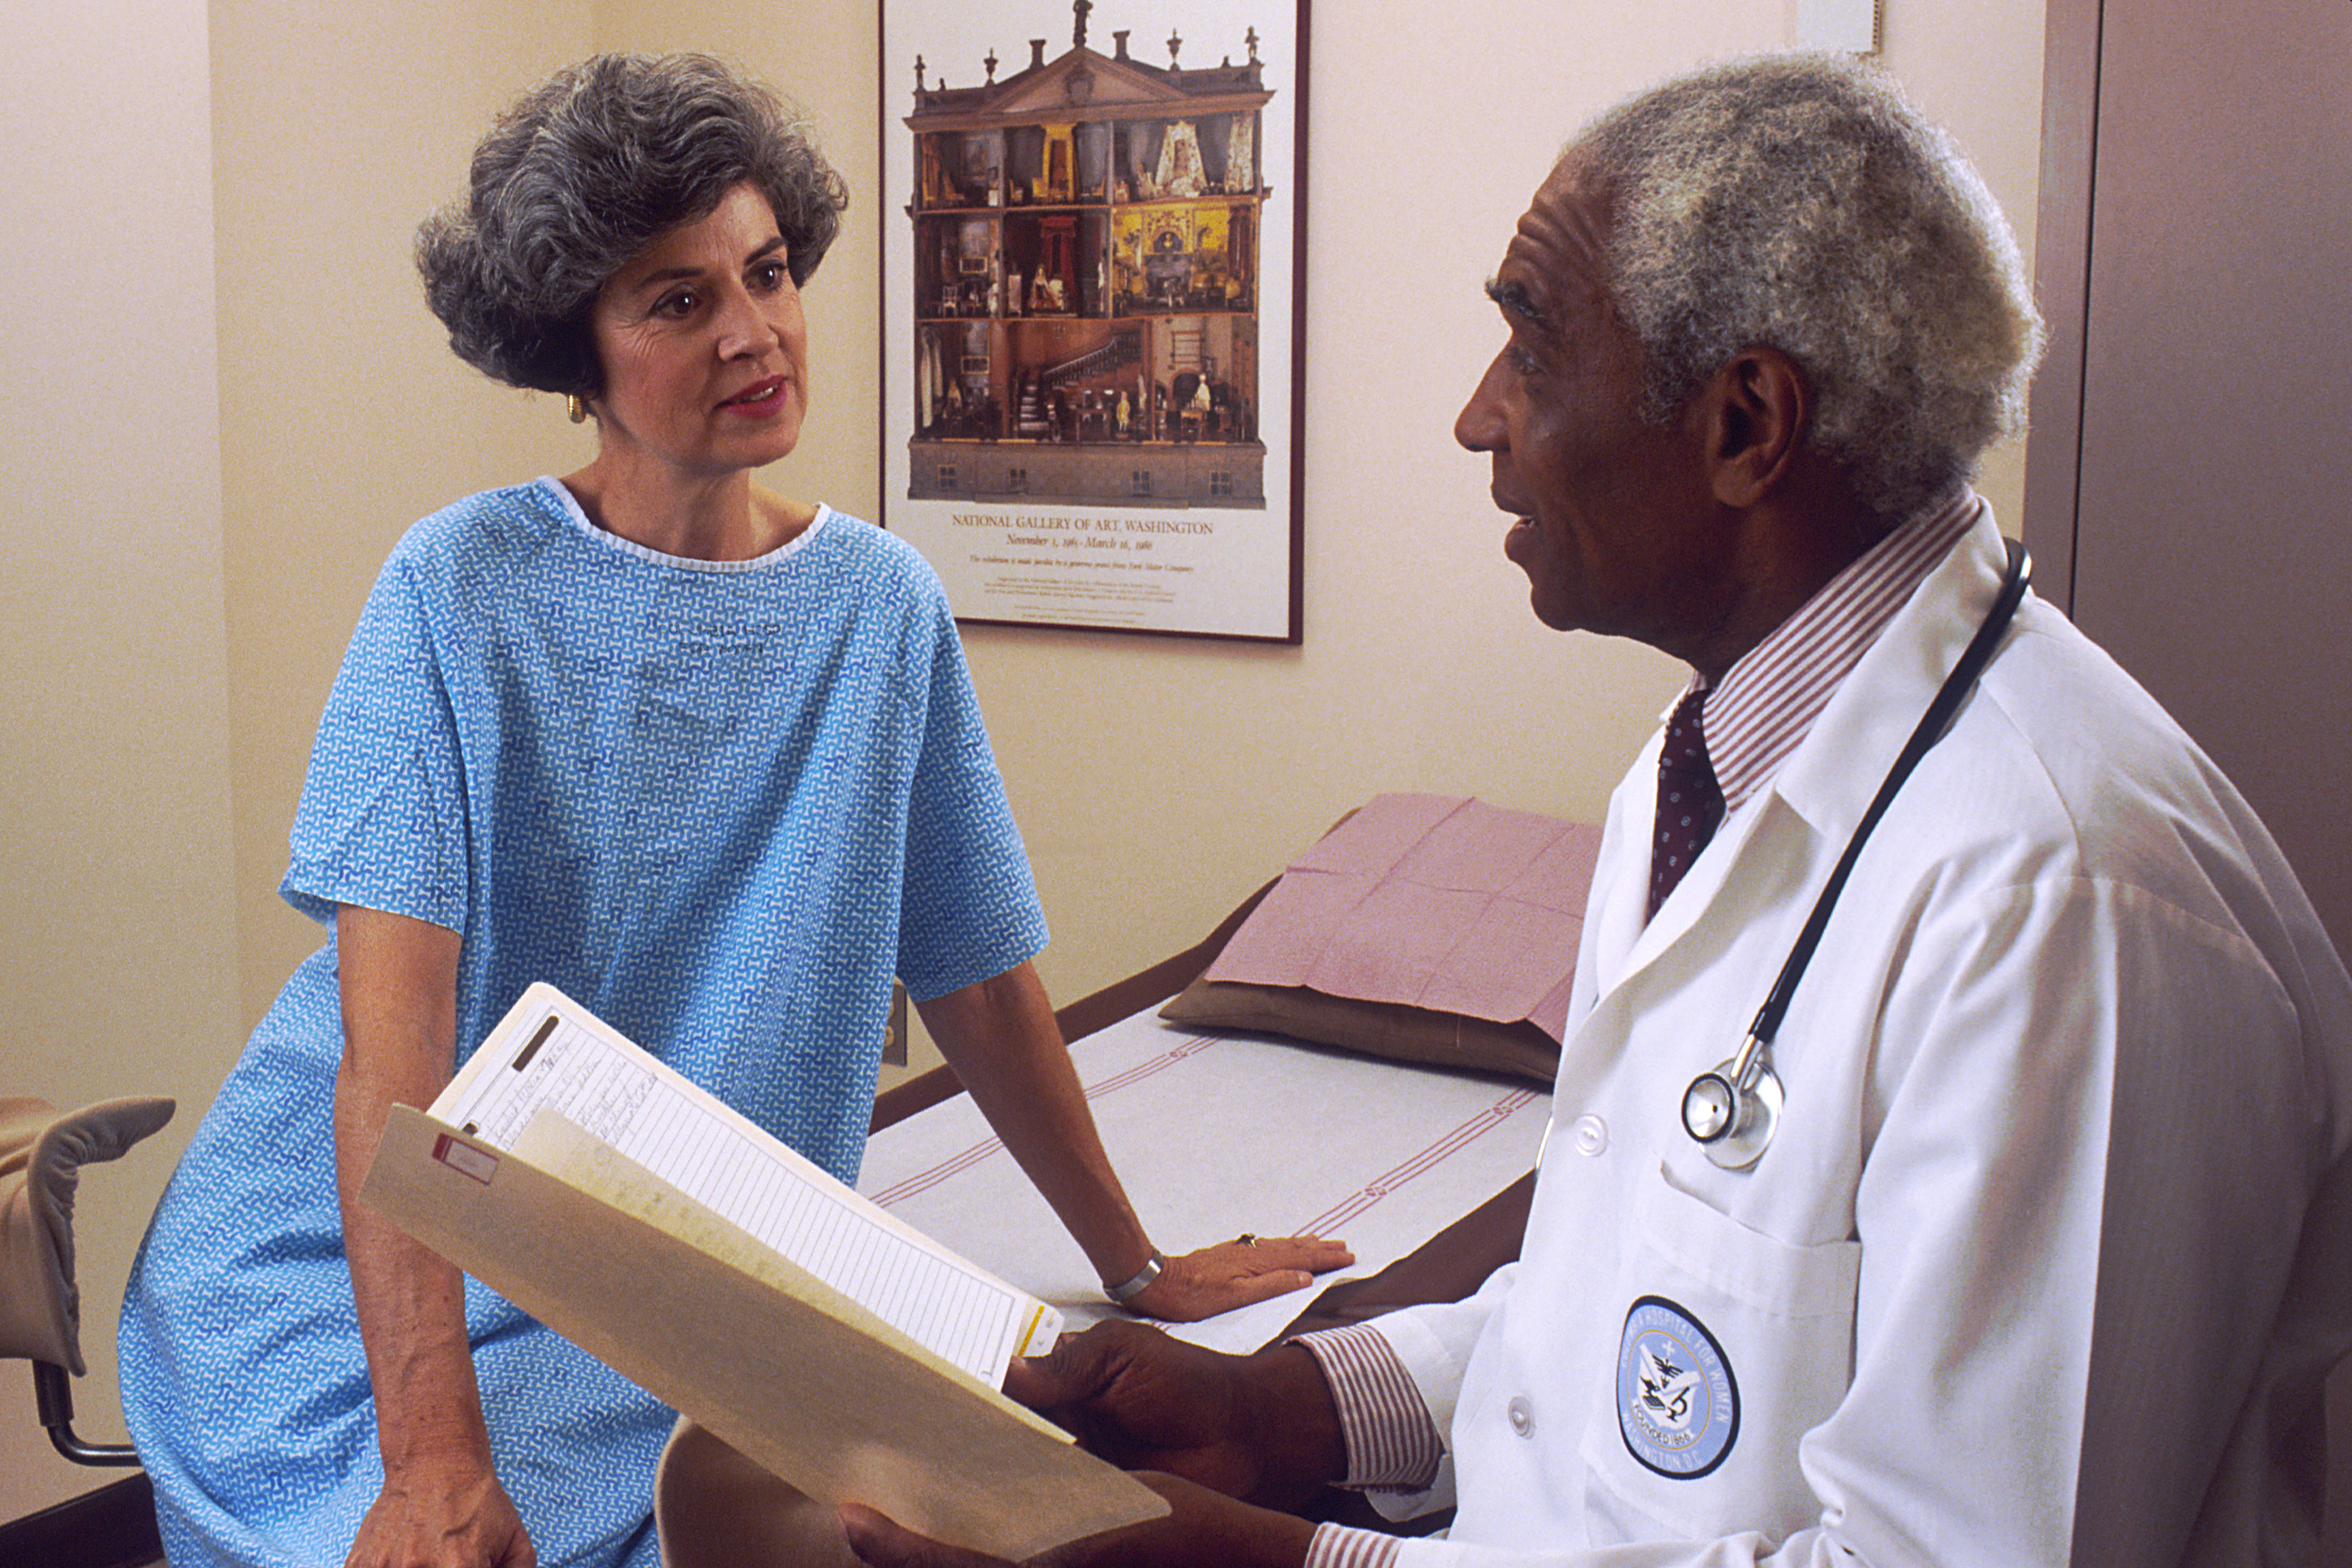 A black older male doctor consults with a white female patient in a hospital room, which should be standard in clinical trials.